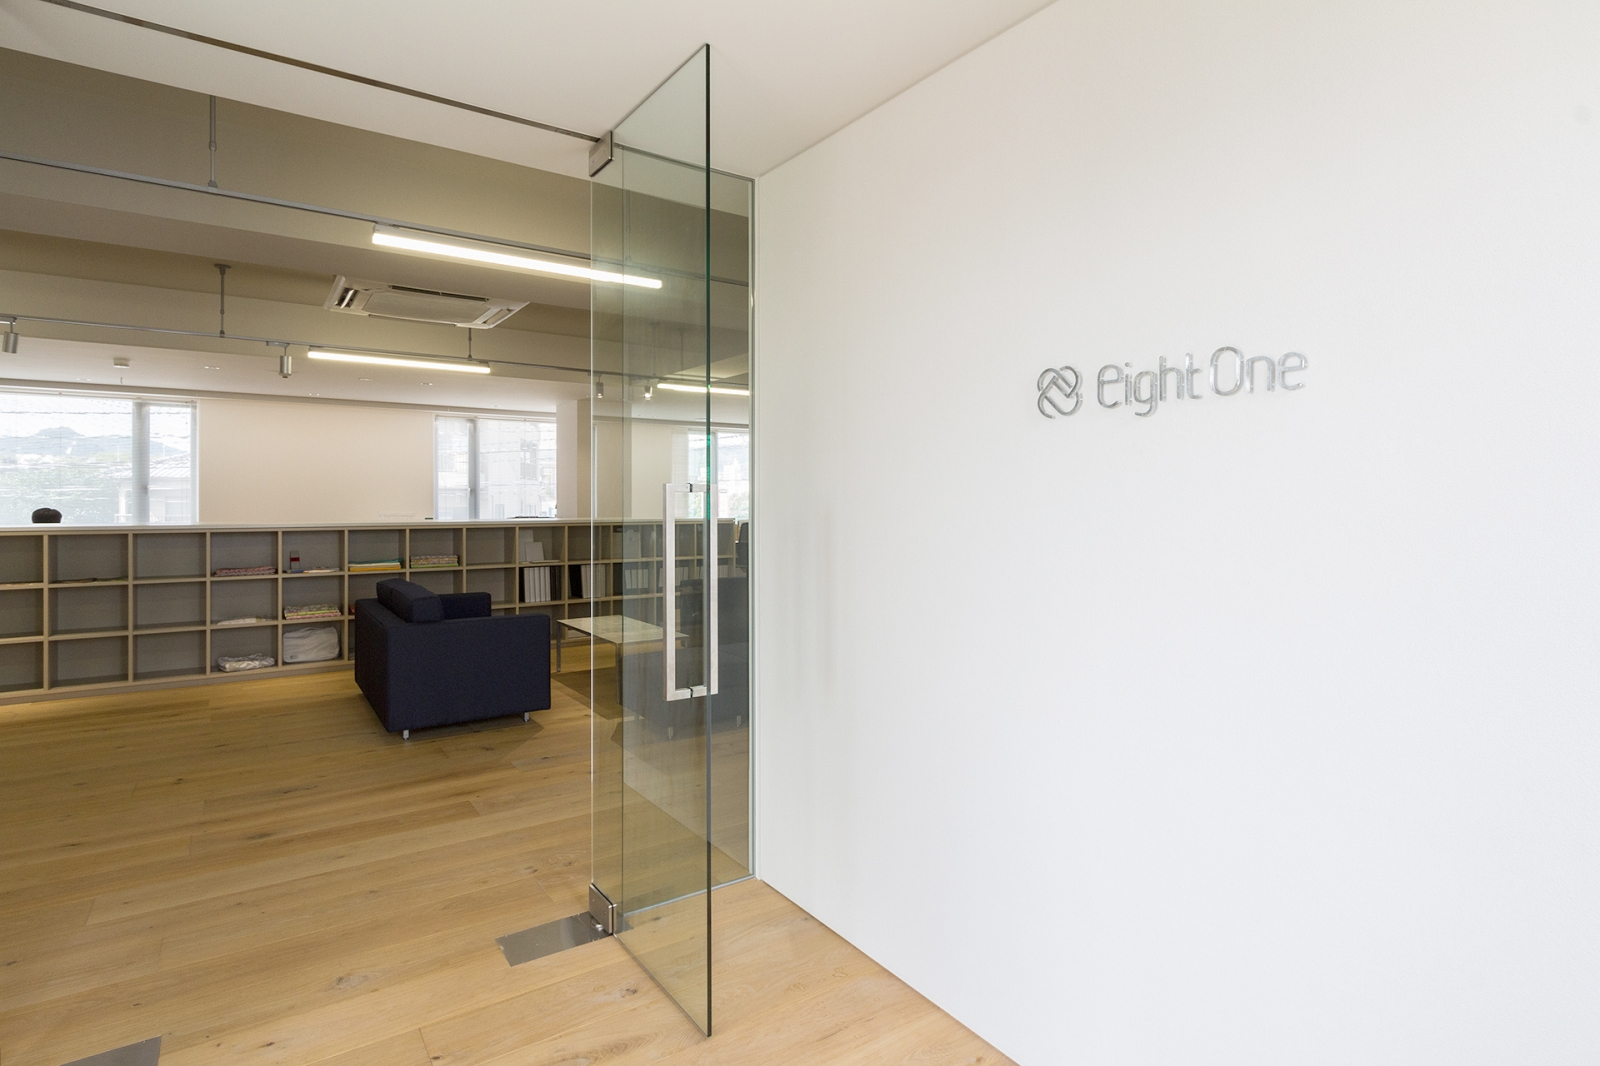 eight one co., ltd. Office-image1